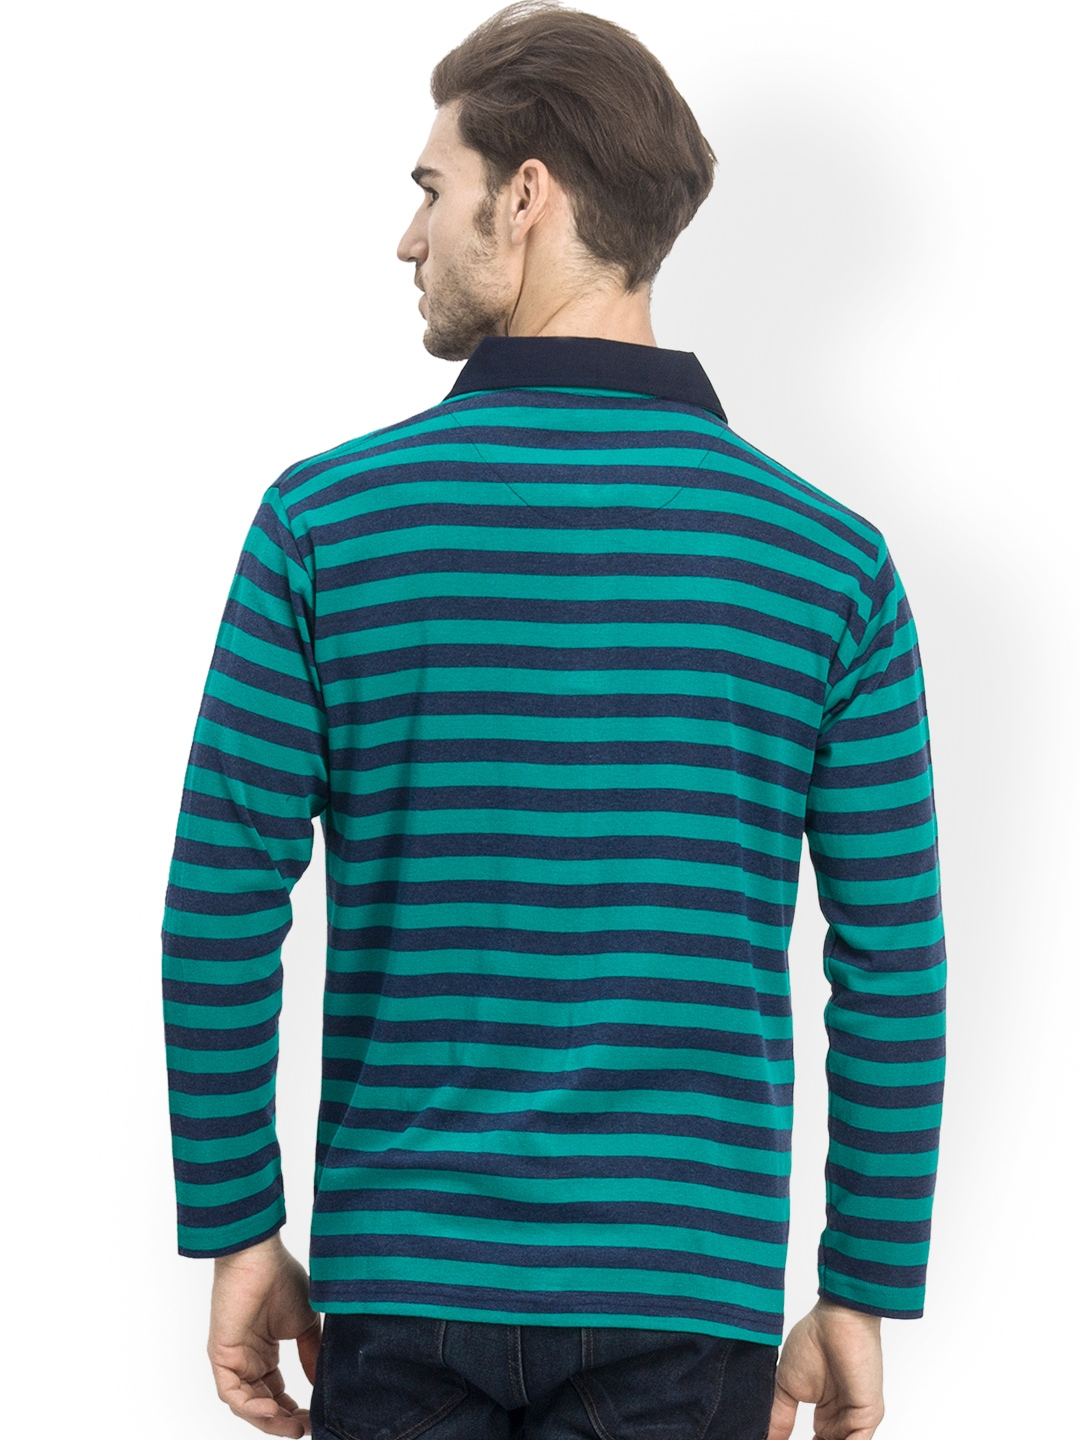 Myntra k mark men teal green striped polo t shirt 605241 for Mens teal polo shirt